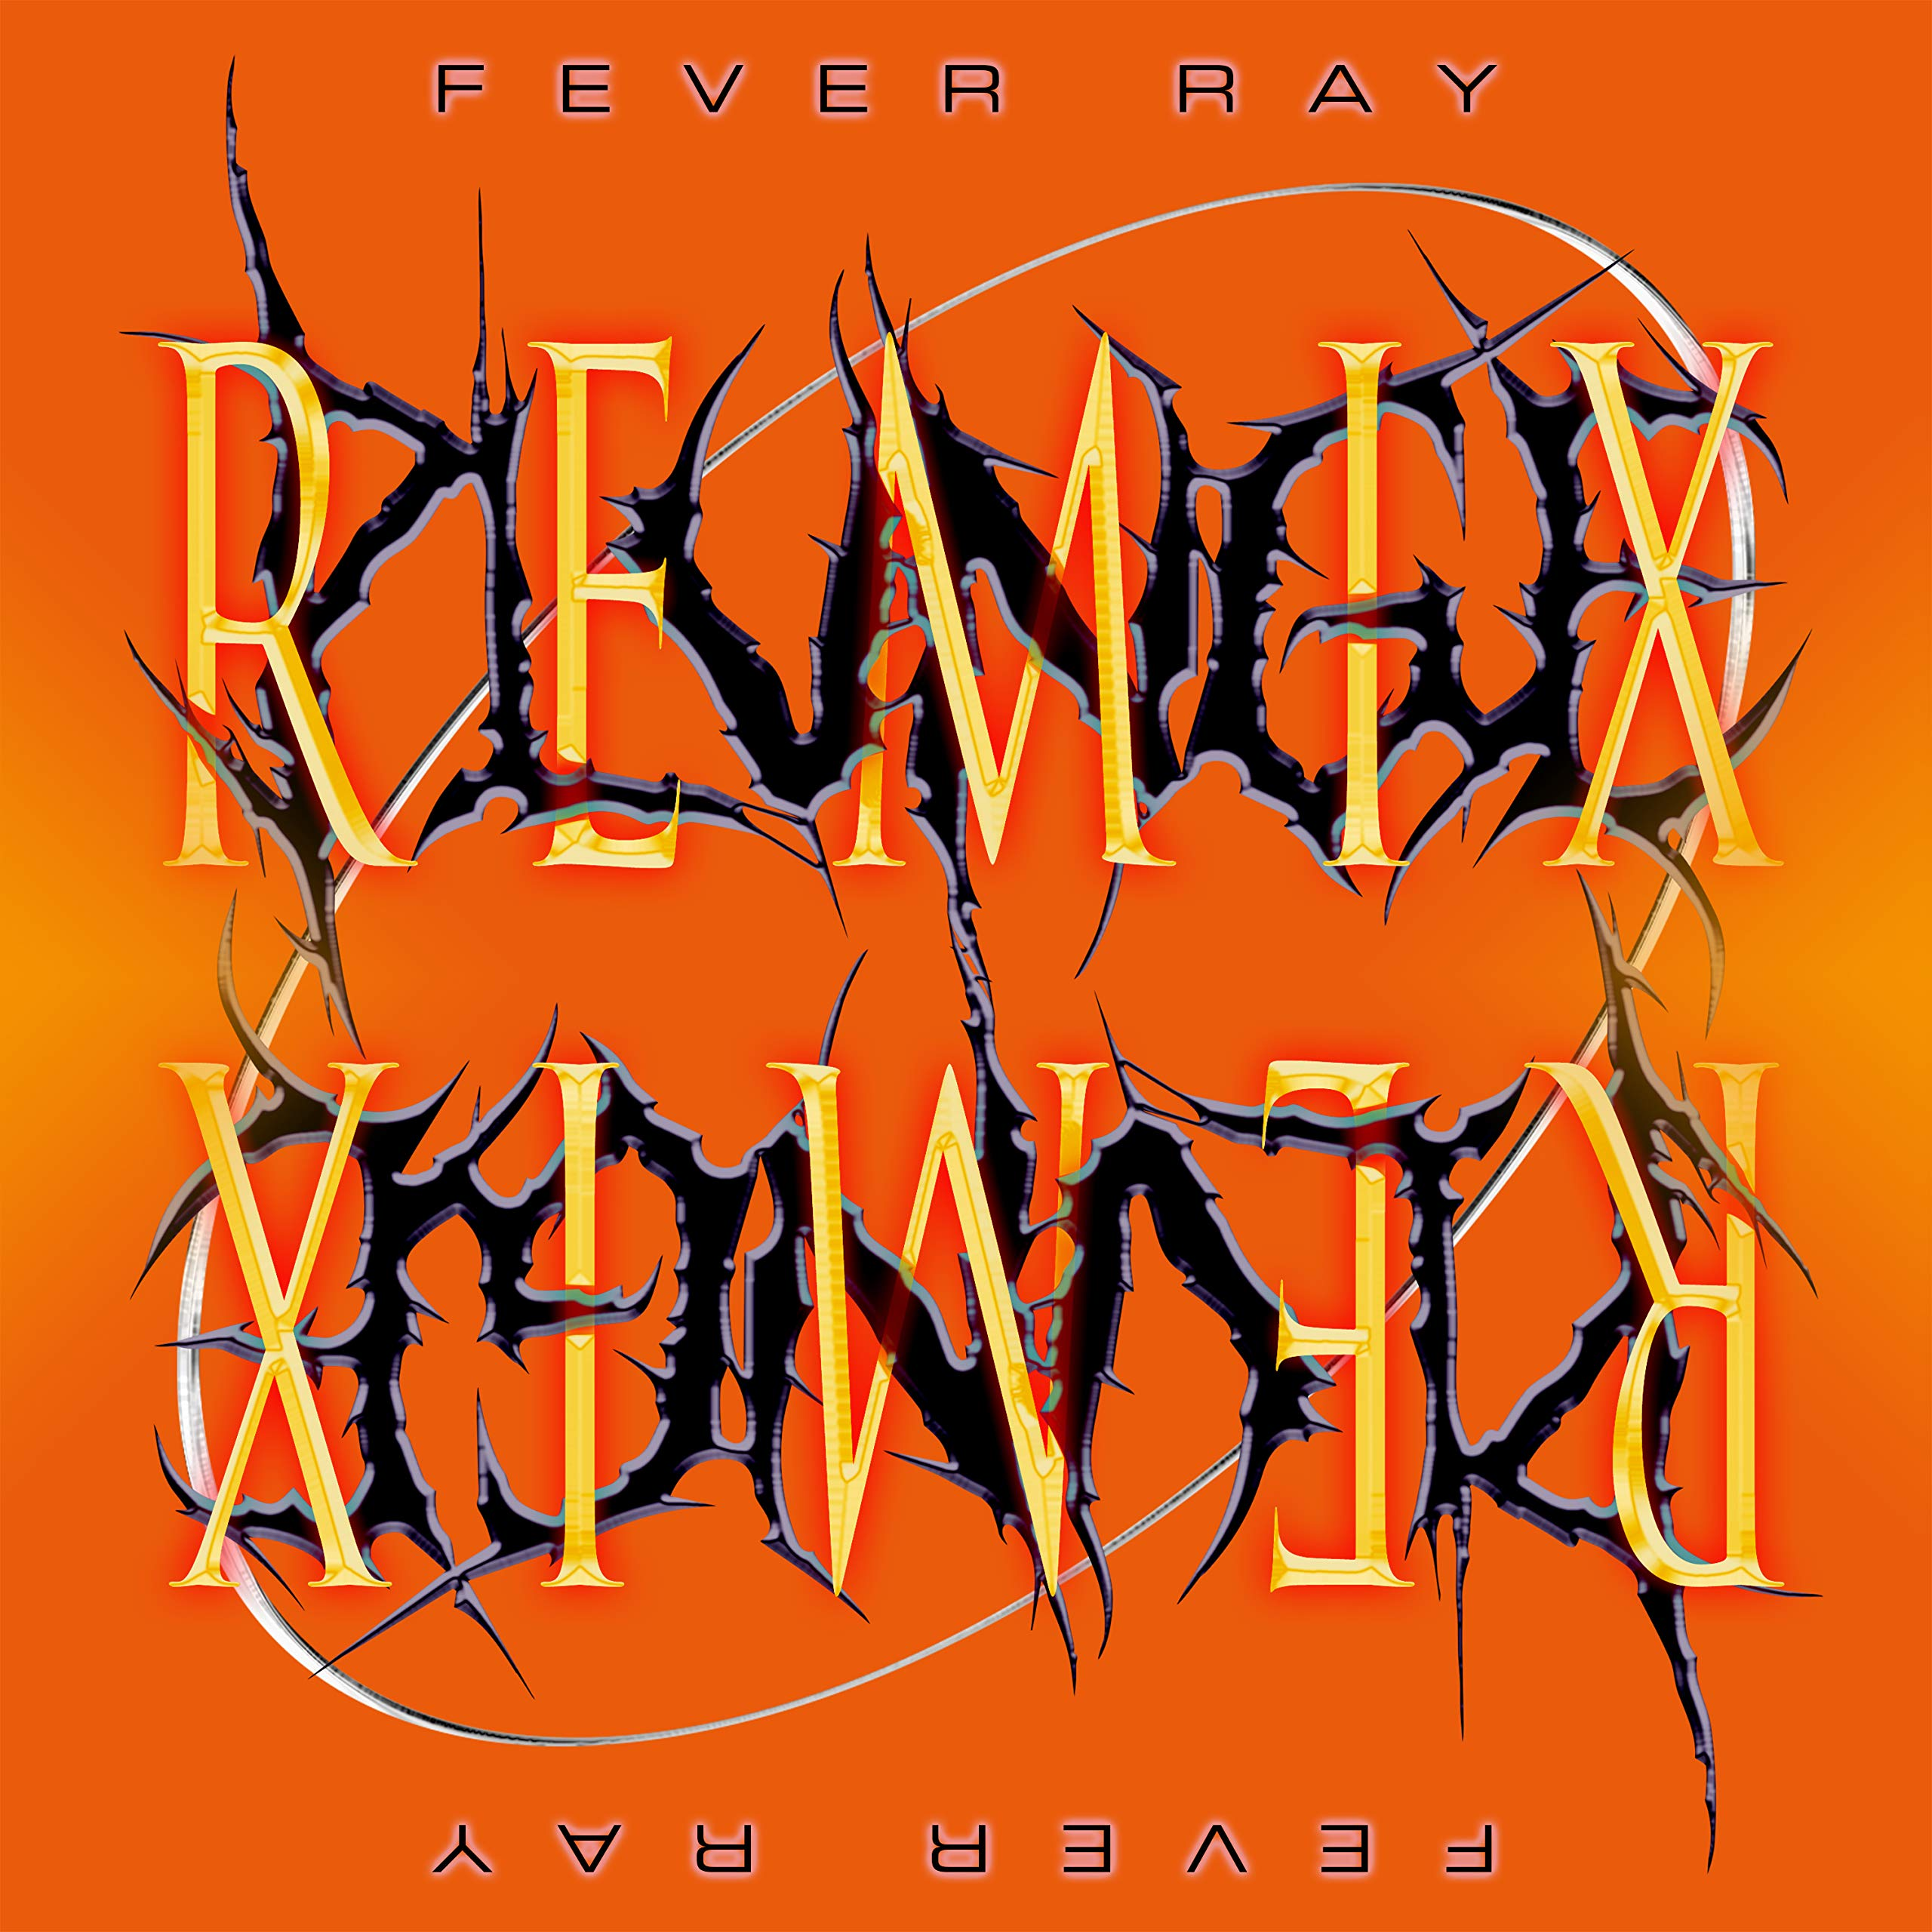 Fever Ray – Plunge Remix (2019) [FLAC]